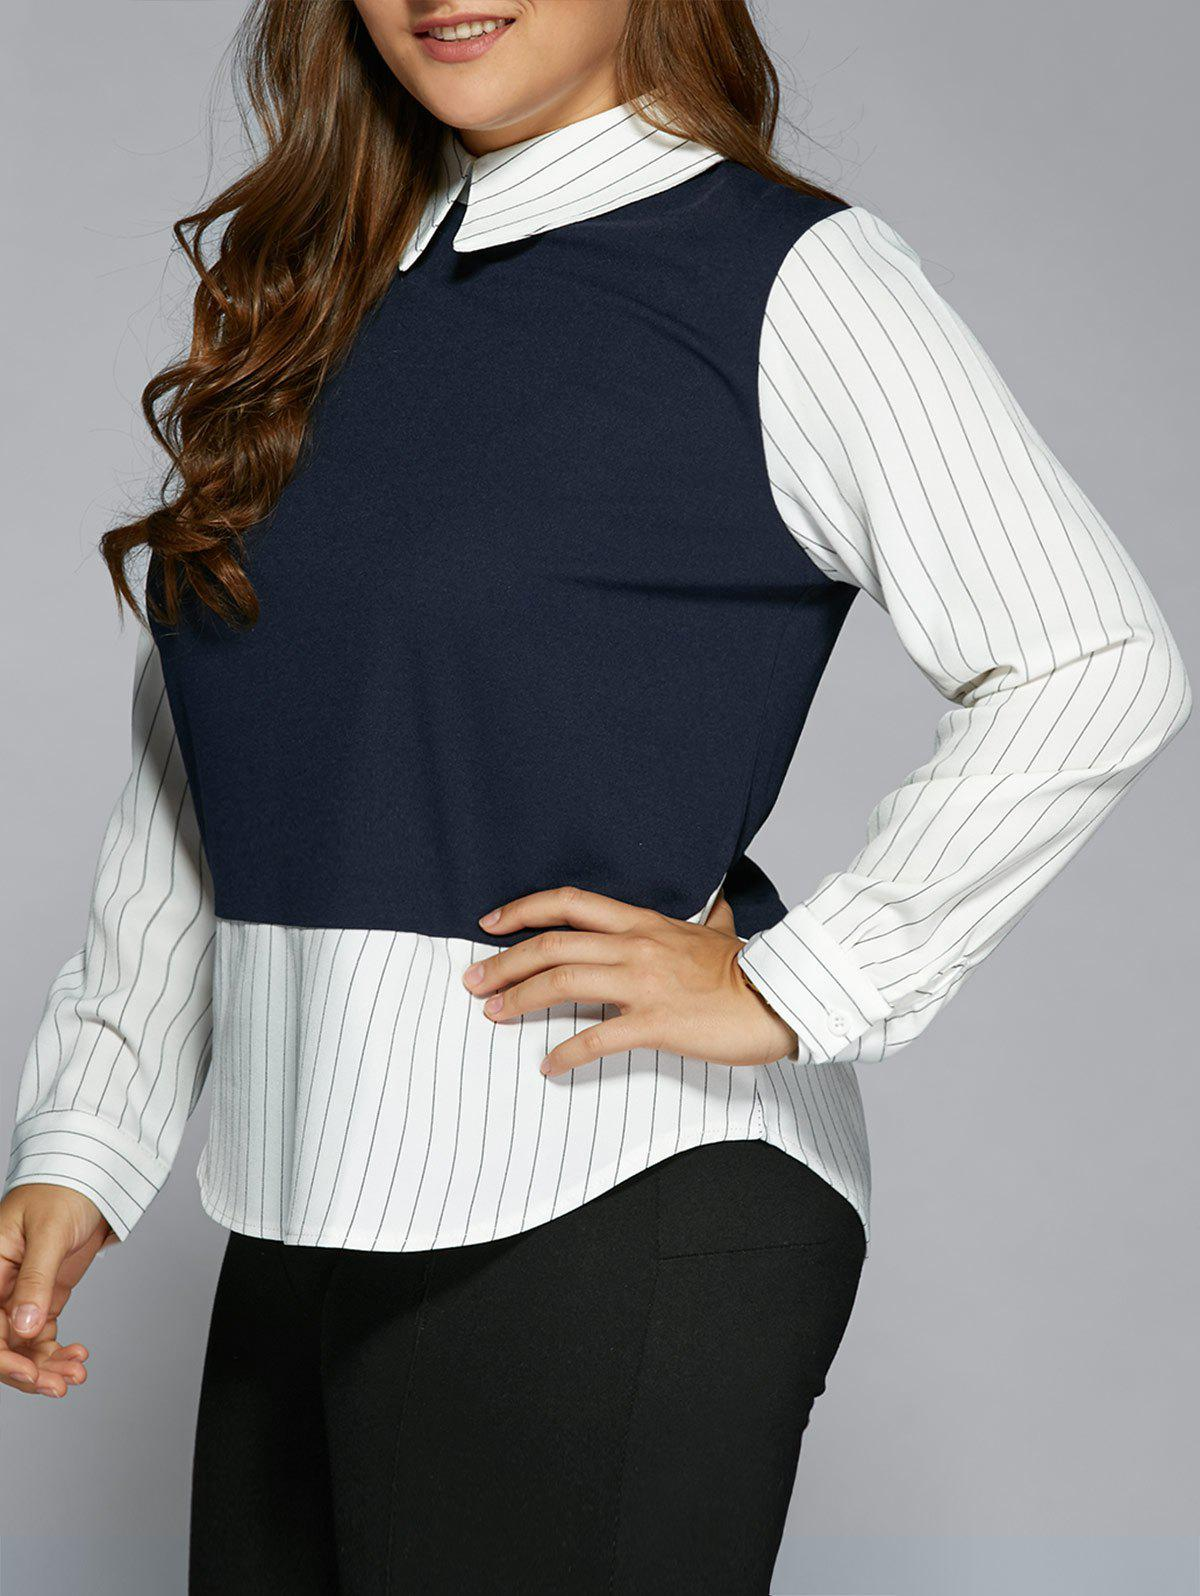 Plus Size Stripe Color Block Faux Twinset ShirtWOMEN<br><br>Size: 2XL; Color: PURPLISH BLUE; Material: Polyester; Shirt Length: Regular; Sleeve Length: Full; Collar: Flat Collar; Style: Fashion; Season: Fall,Spring,Winter; Embellishment: Zippers; Pattern Type: Striped; Weight: 0.410kg; Package Contents: 1 x  Shirt;